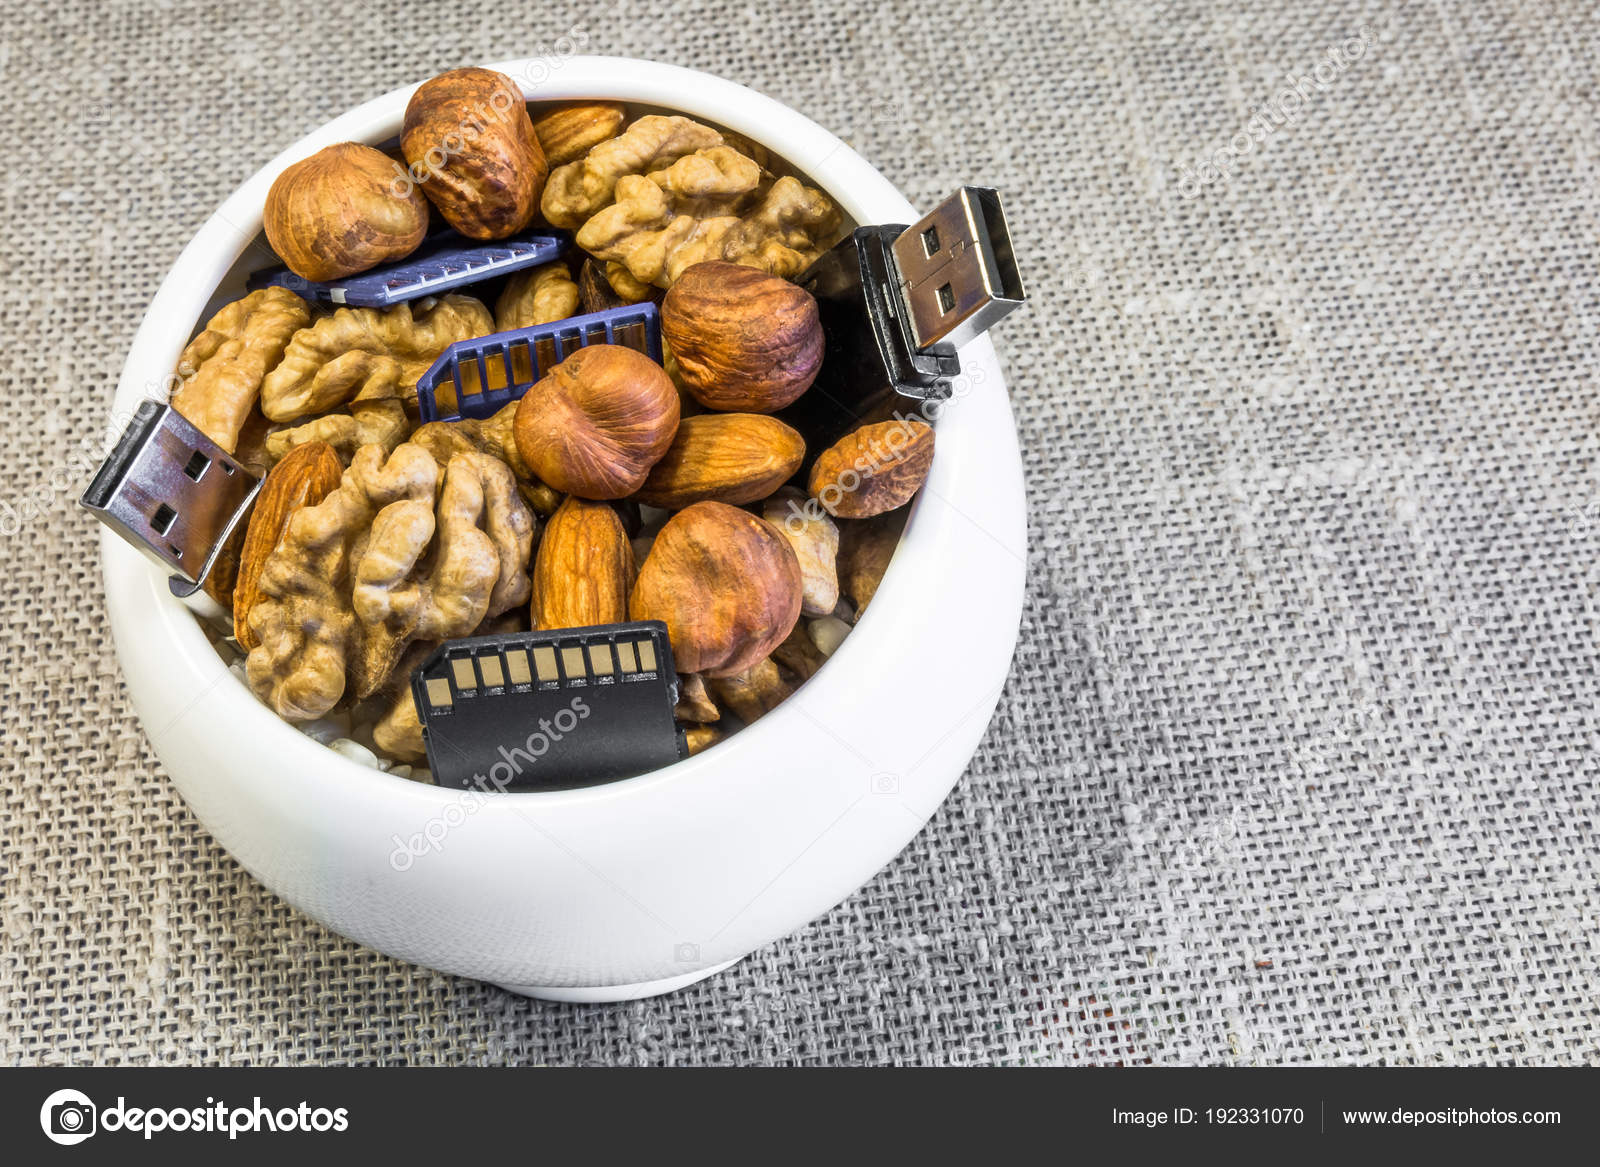 Nuts: composition 50